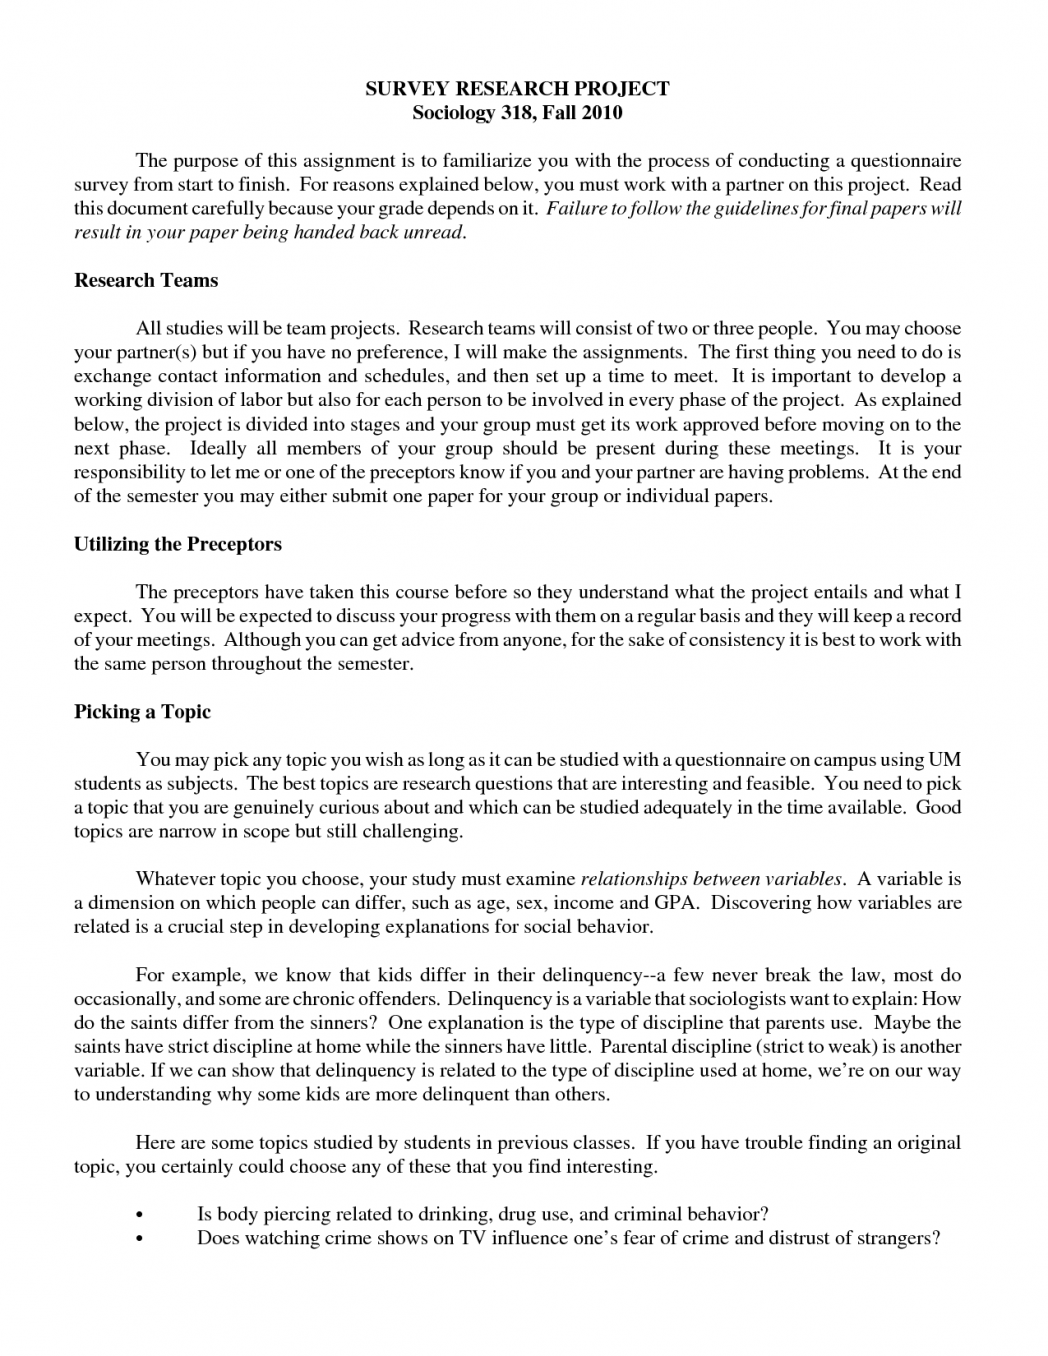 008 How To Write Good Hook For An Essays Of Hooks Research Define Transitional In Writing Bcl12 The Type 1048x1356 Staggering A Essay Argumentative College Full